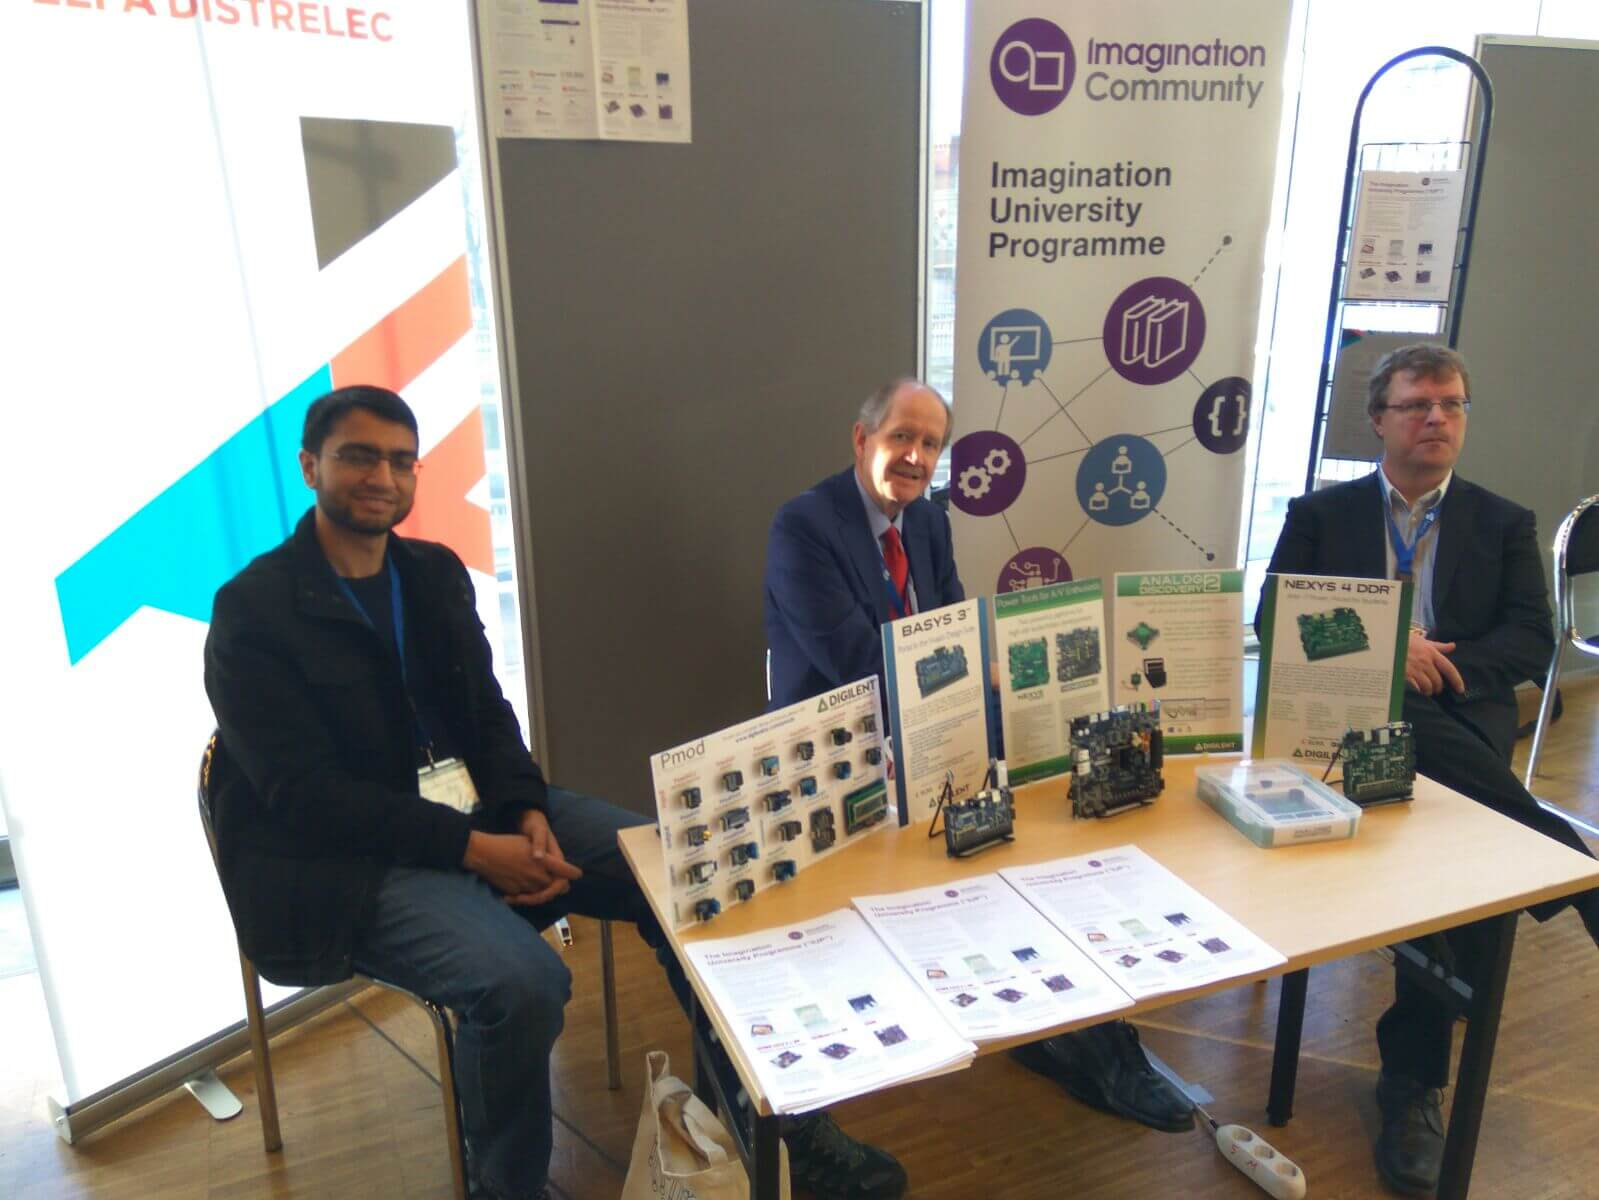 Imagination Booth at the HiPEAC 2017 Conference, Stockholm. Jan. 2017